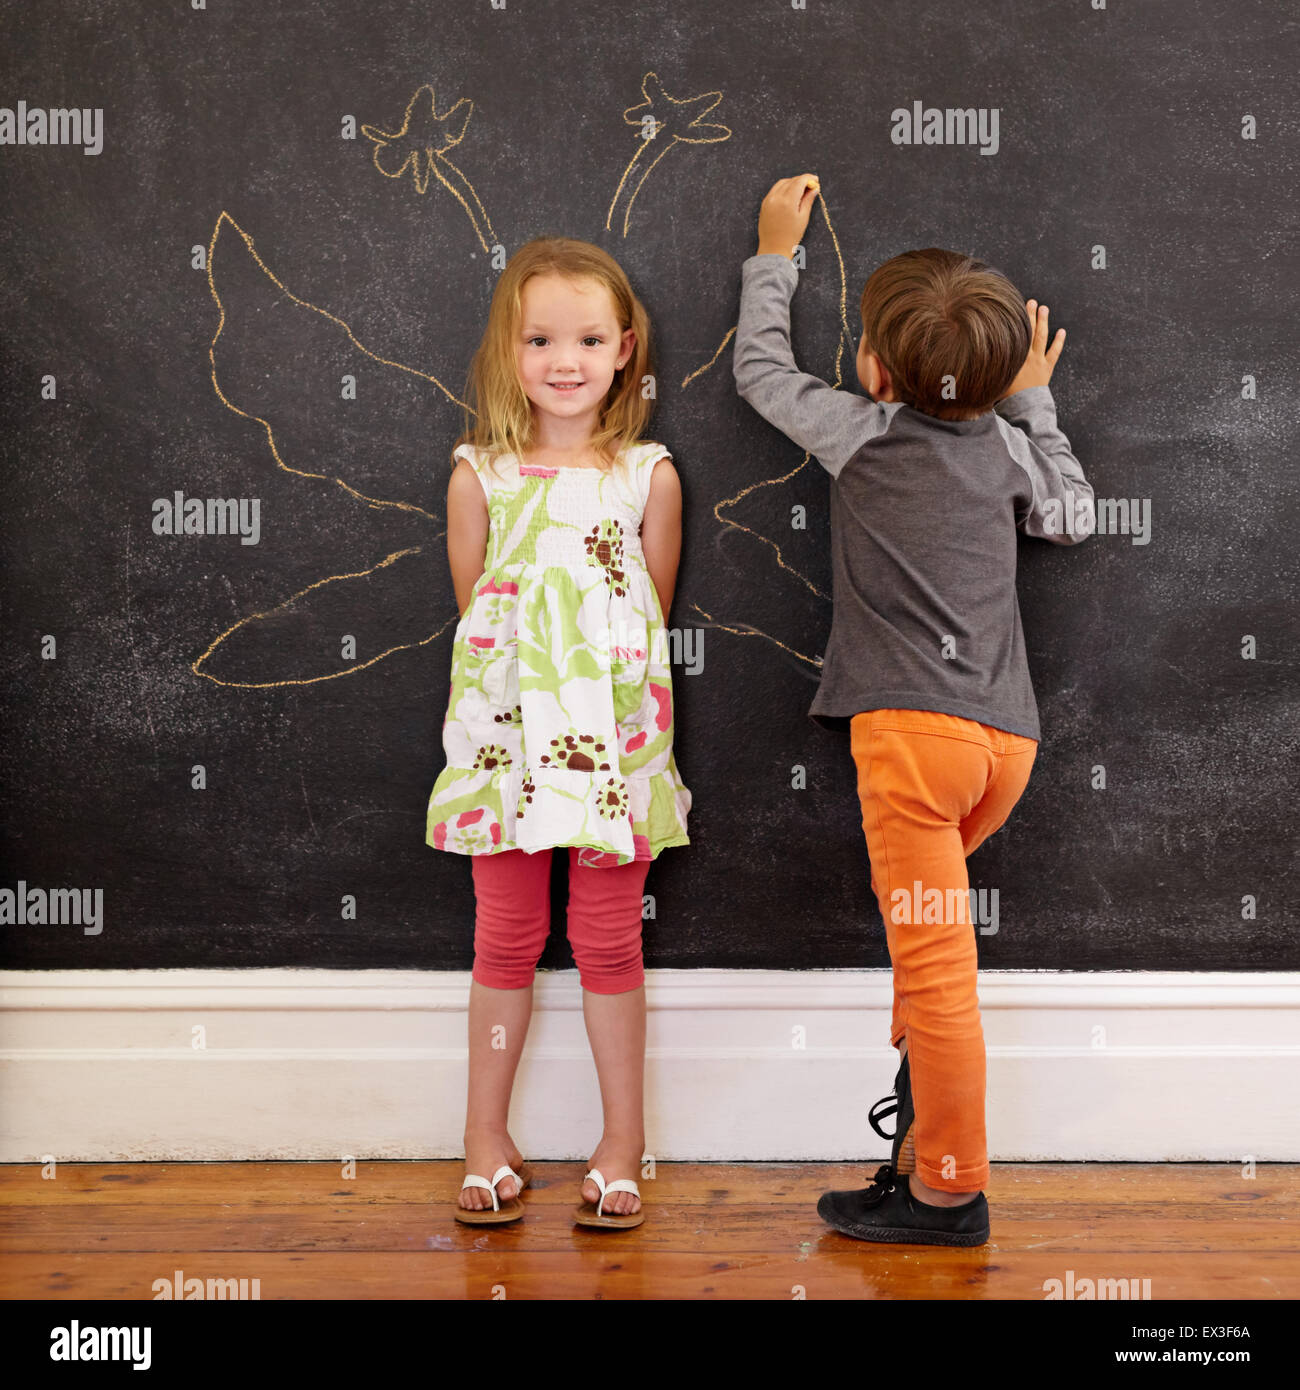 Full length portrait of cute little girl standing and little boy drawing angel wings around her on blackboard. - Stock Image